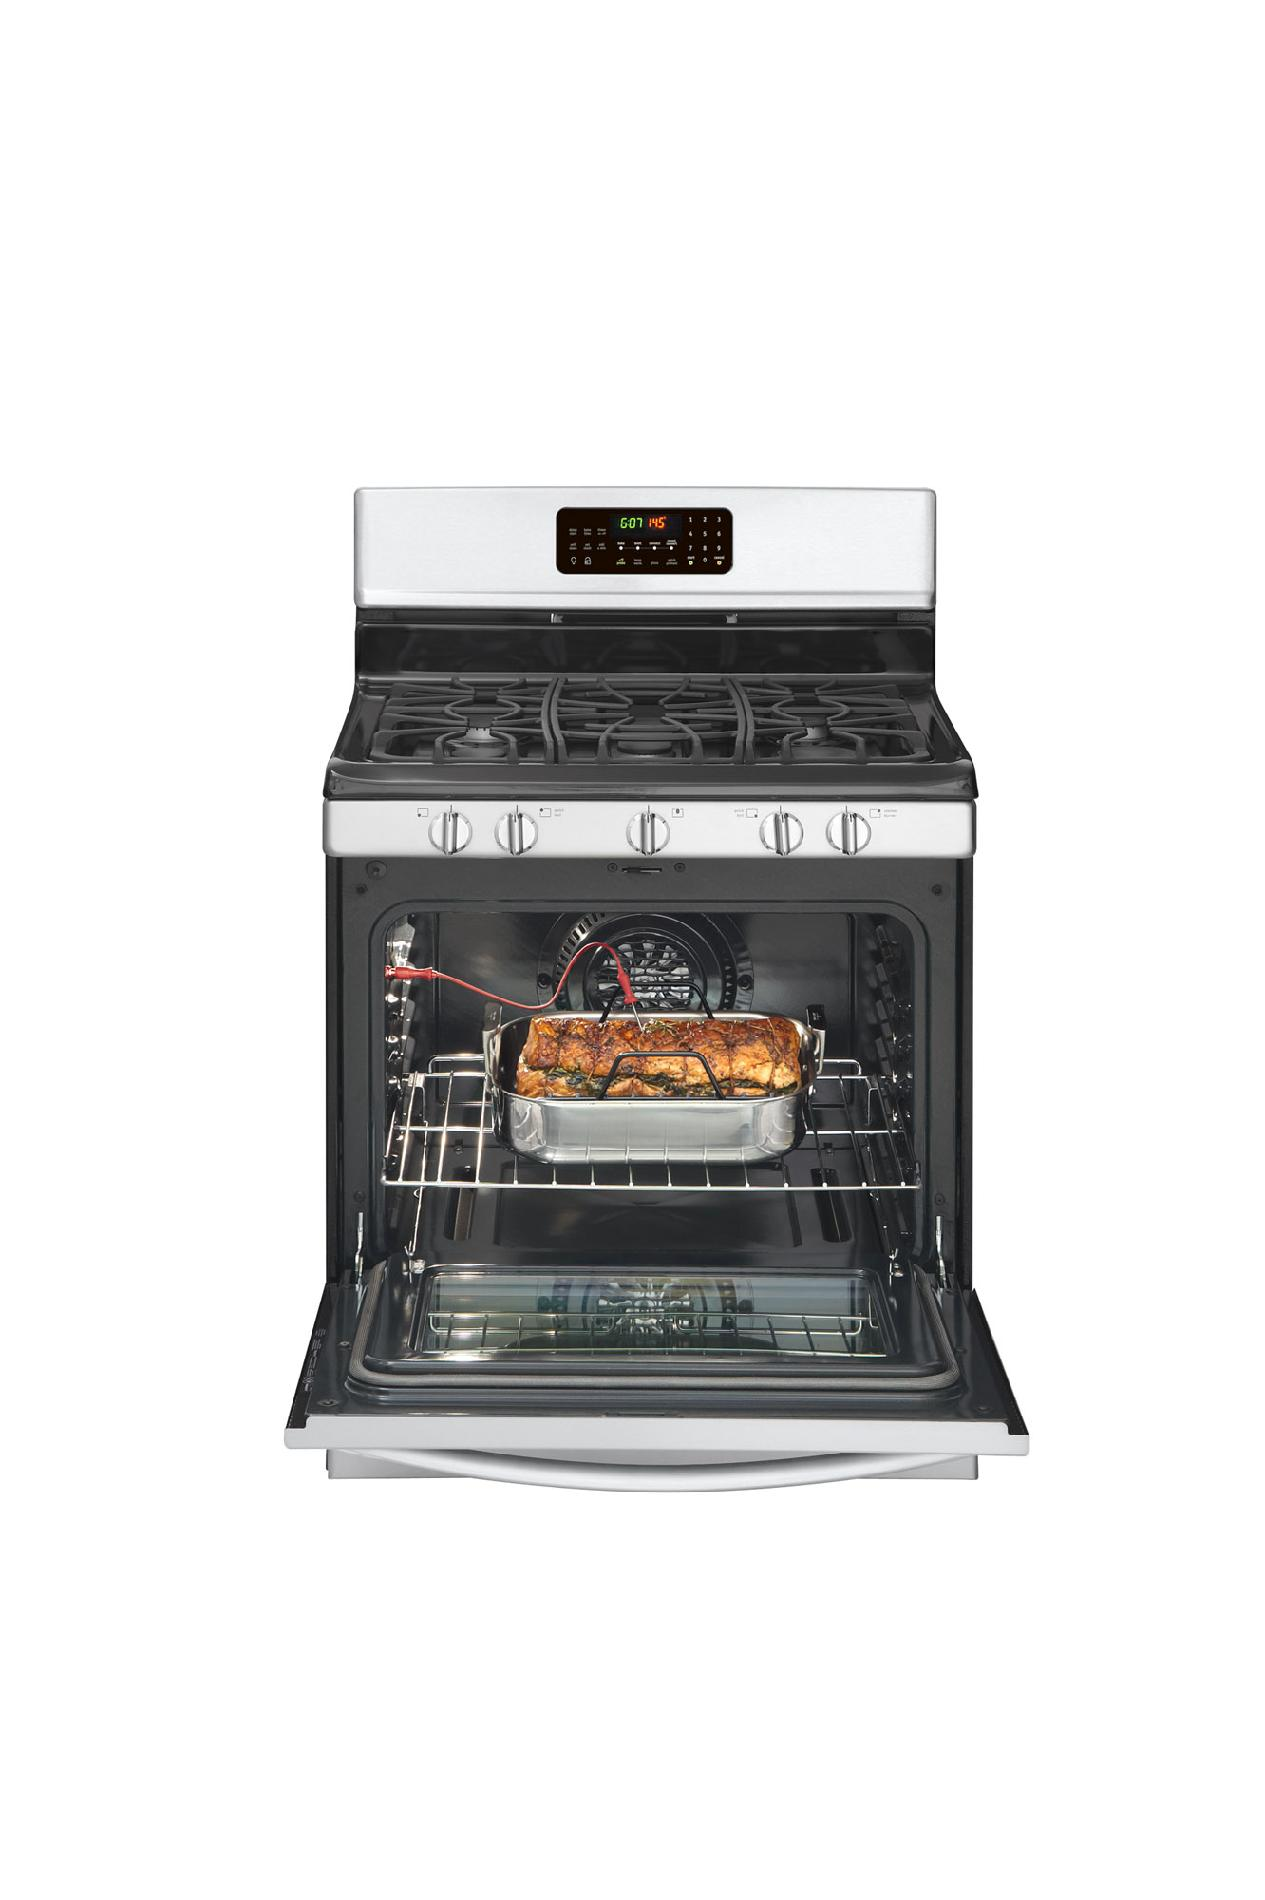 Frigidaire Gallery Gallery 5.0 cu. ft. Freestanding Gas Range w/ Effortless™ Temperature Probe - Stainless Steel